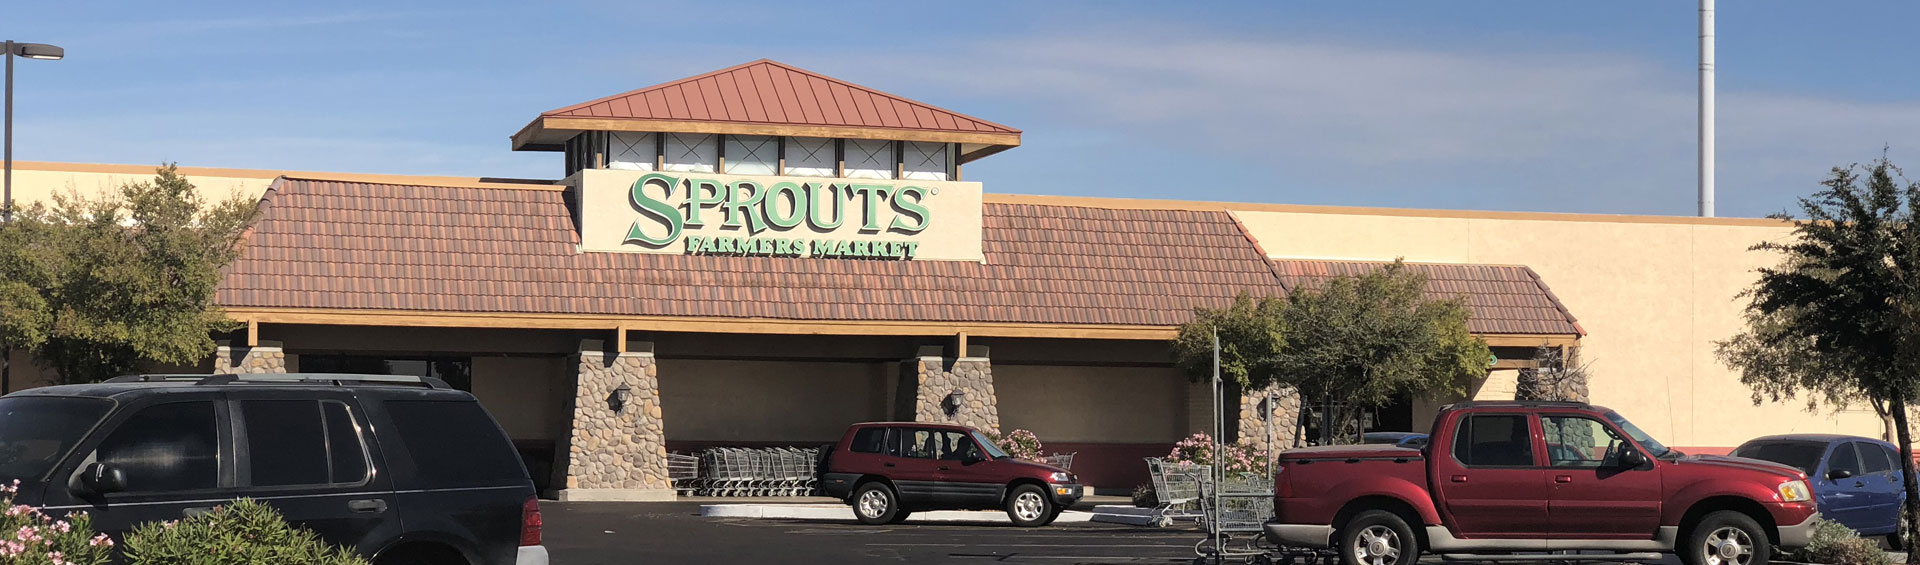 Sprouts Farmers Market - Glendale | Florham Realty